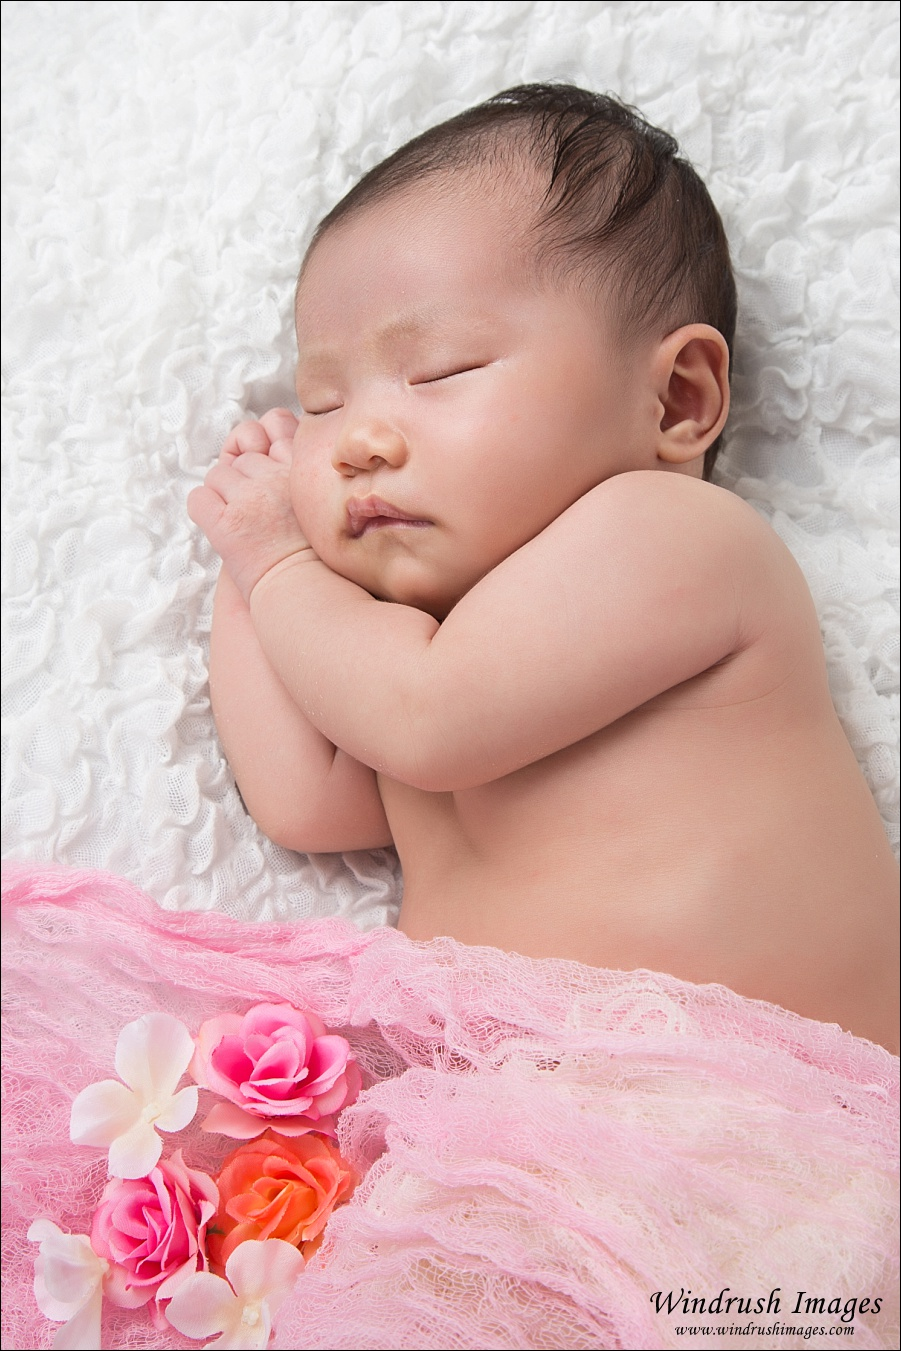 One month old baby sleeping with pink flowers Calgary newborn photography